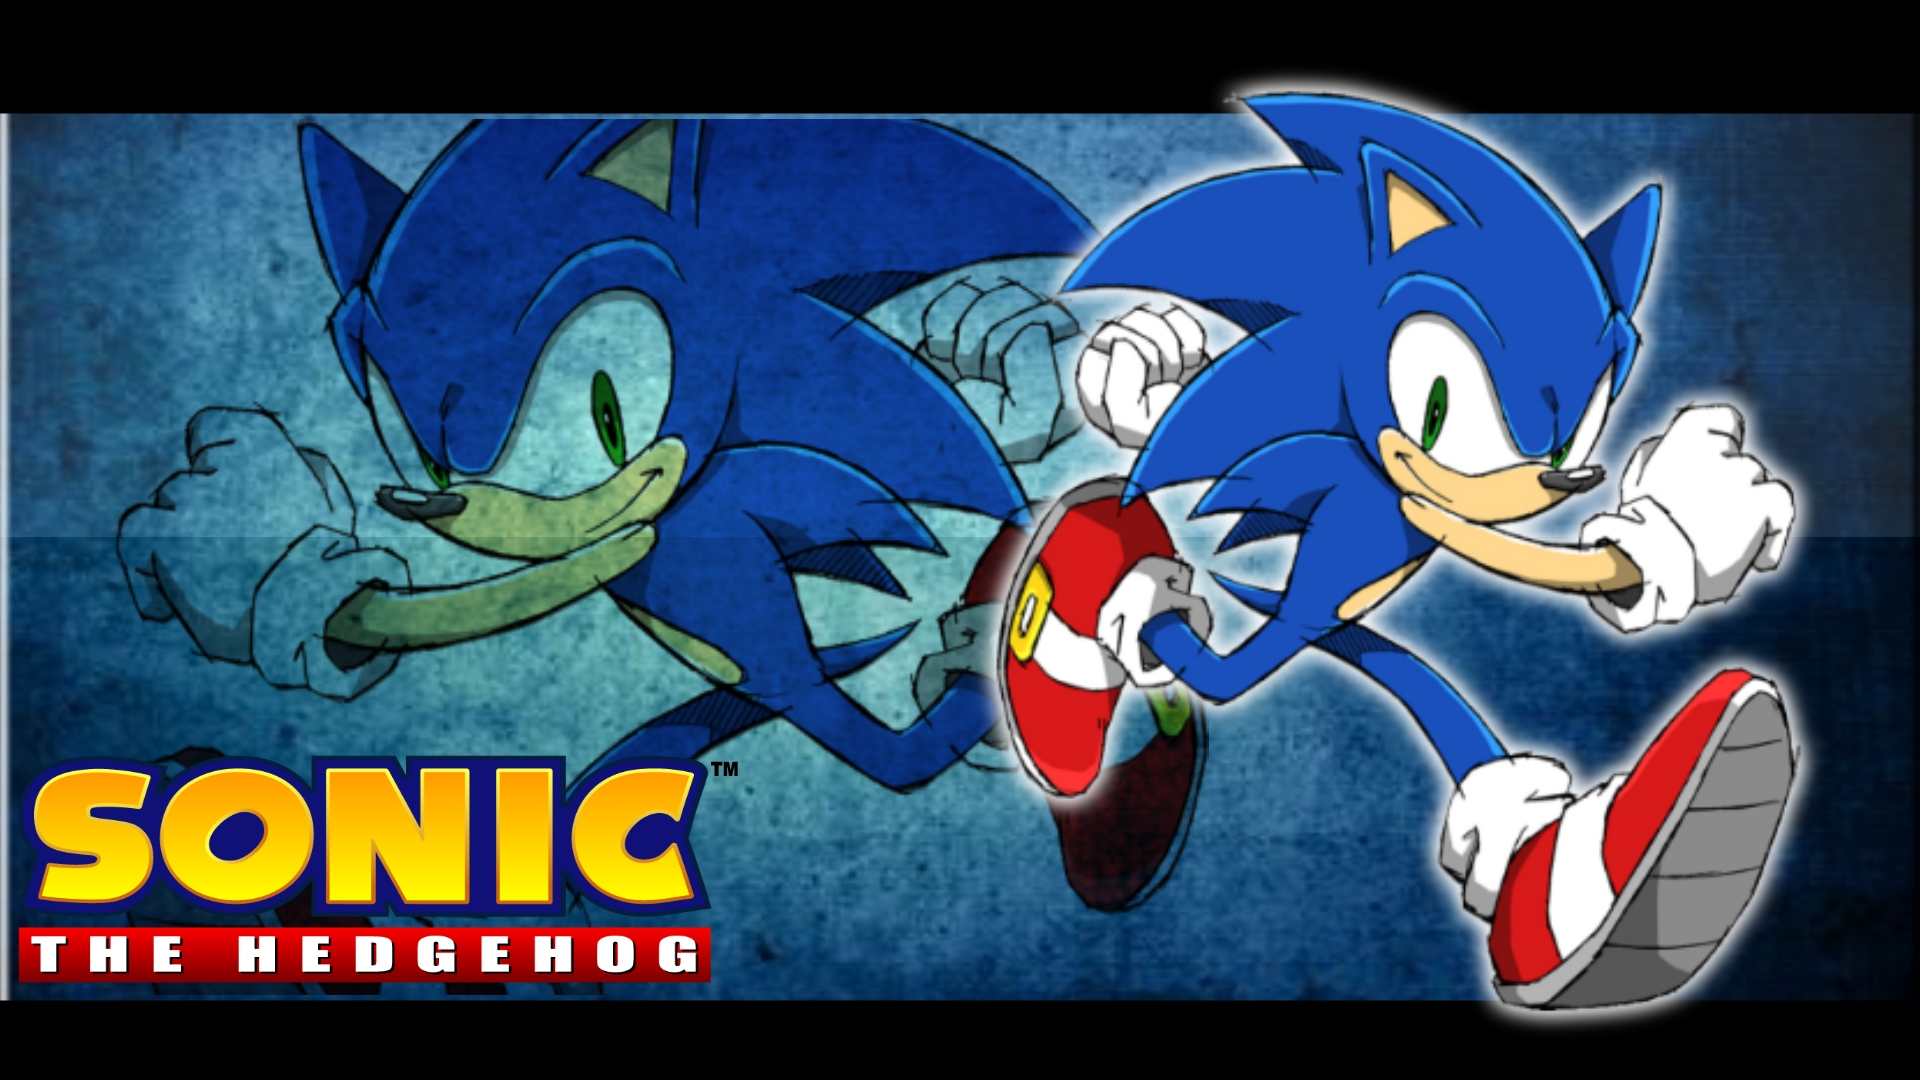 Sonic the Hedgehog HD Wallpaper | Background Image | 1920x1080 | ID:509992 - Wallpaper Abyss